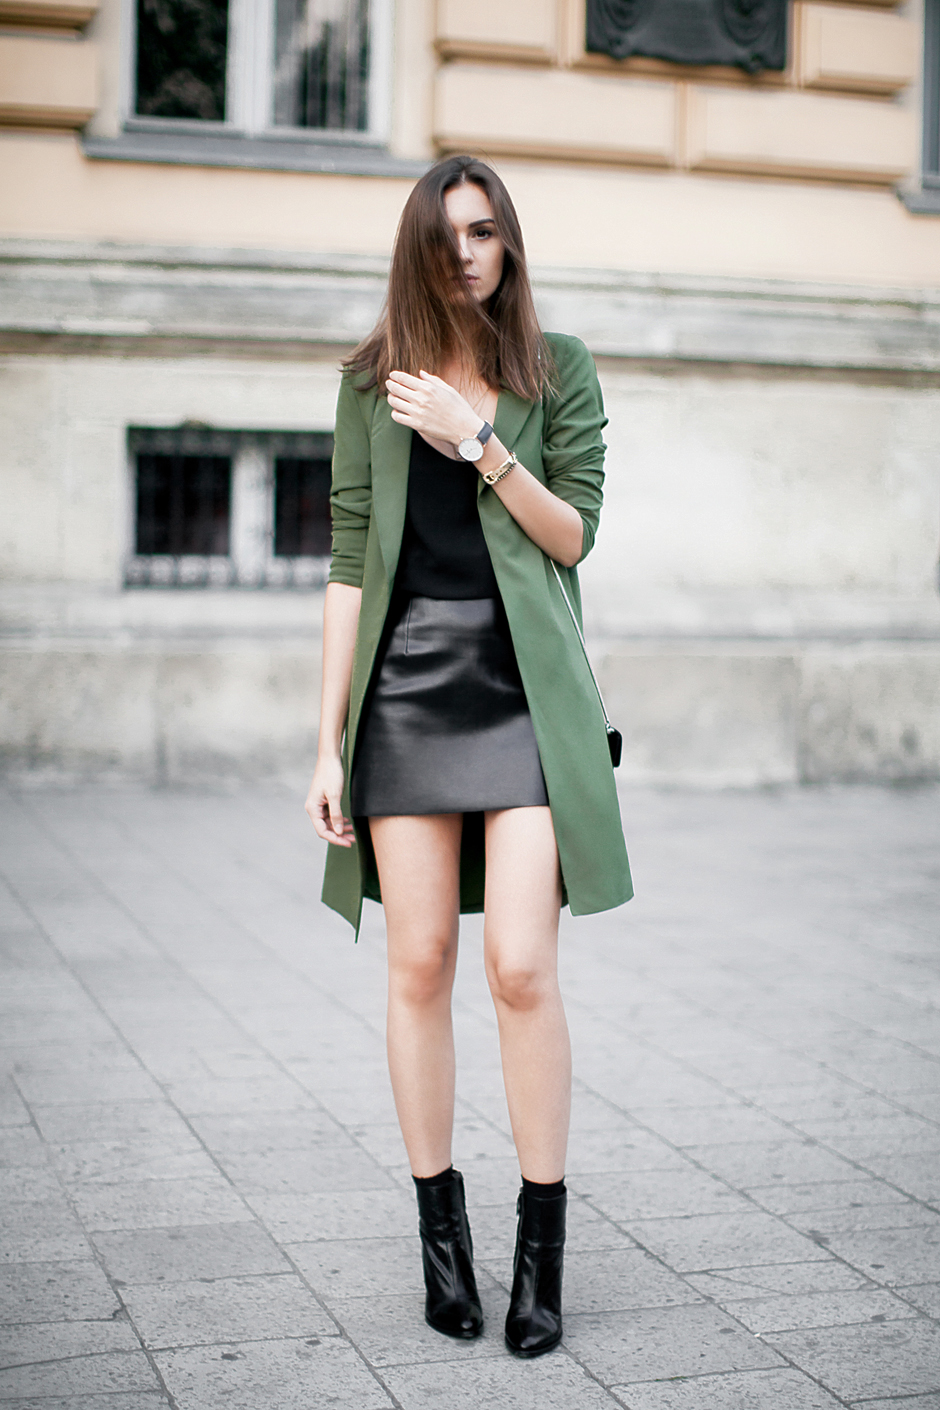 fashion-look-street-style-military-green-coat